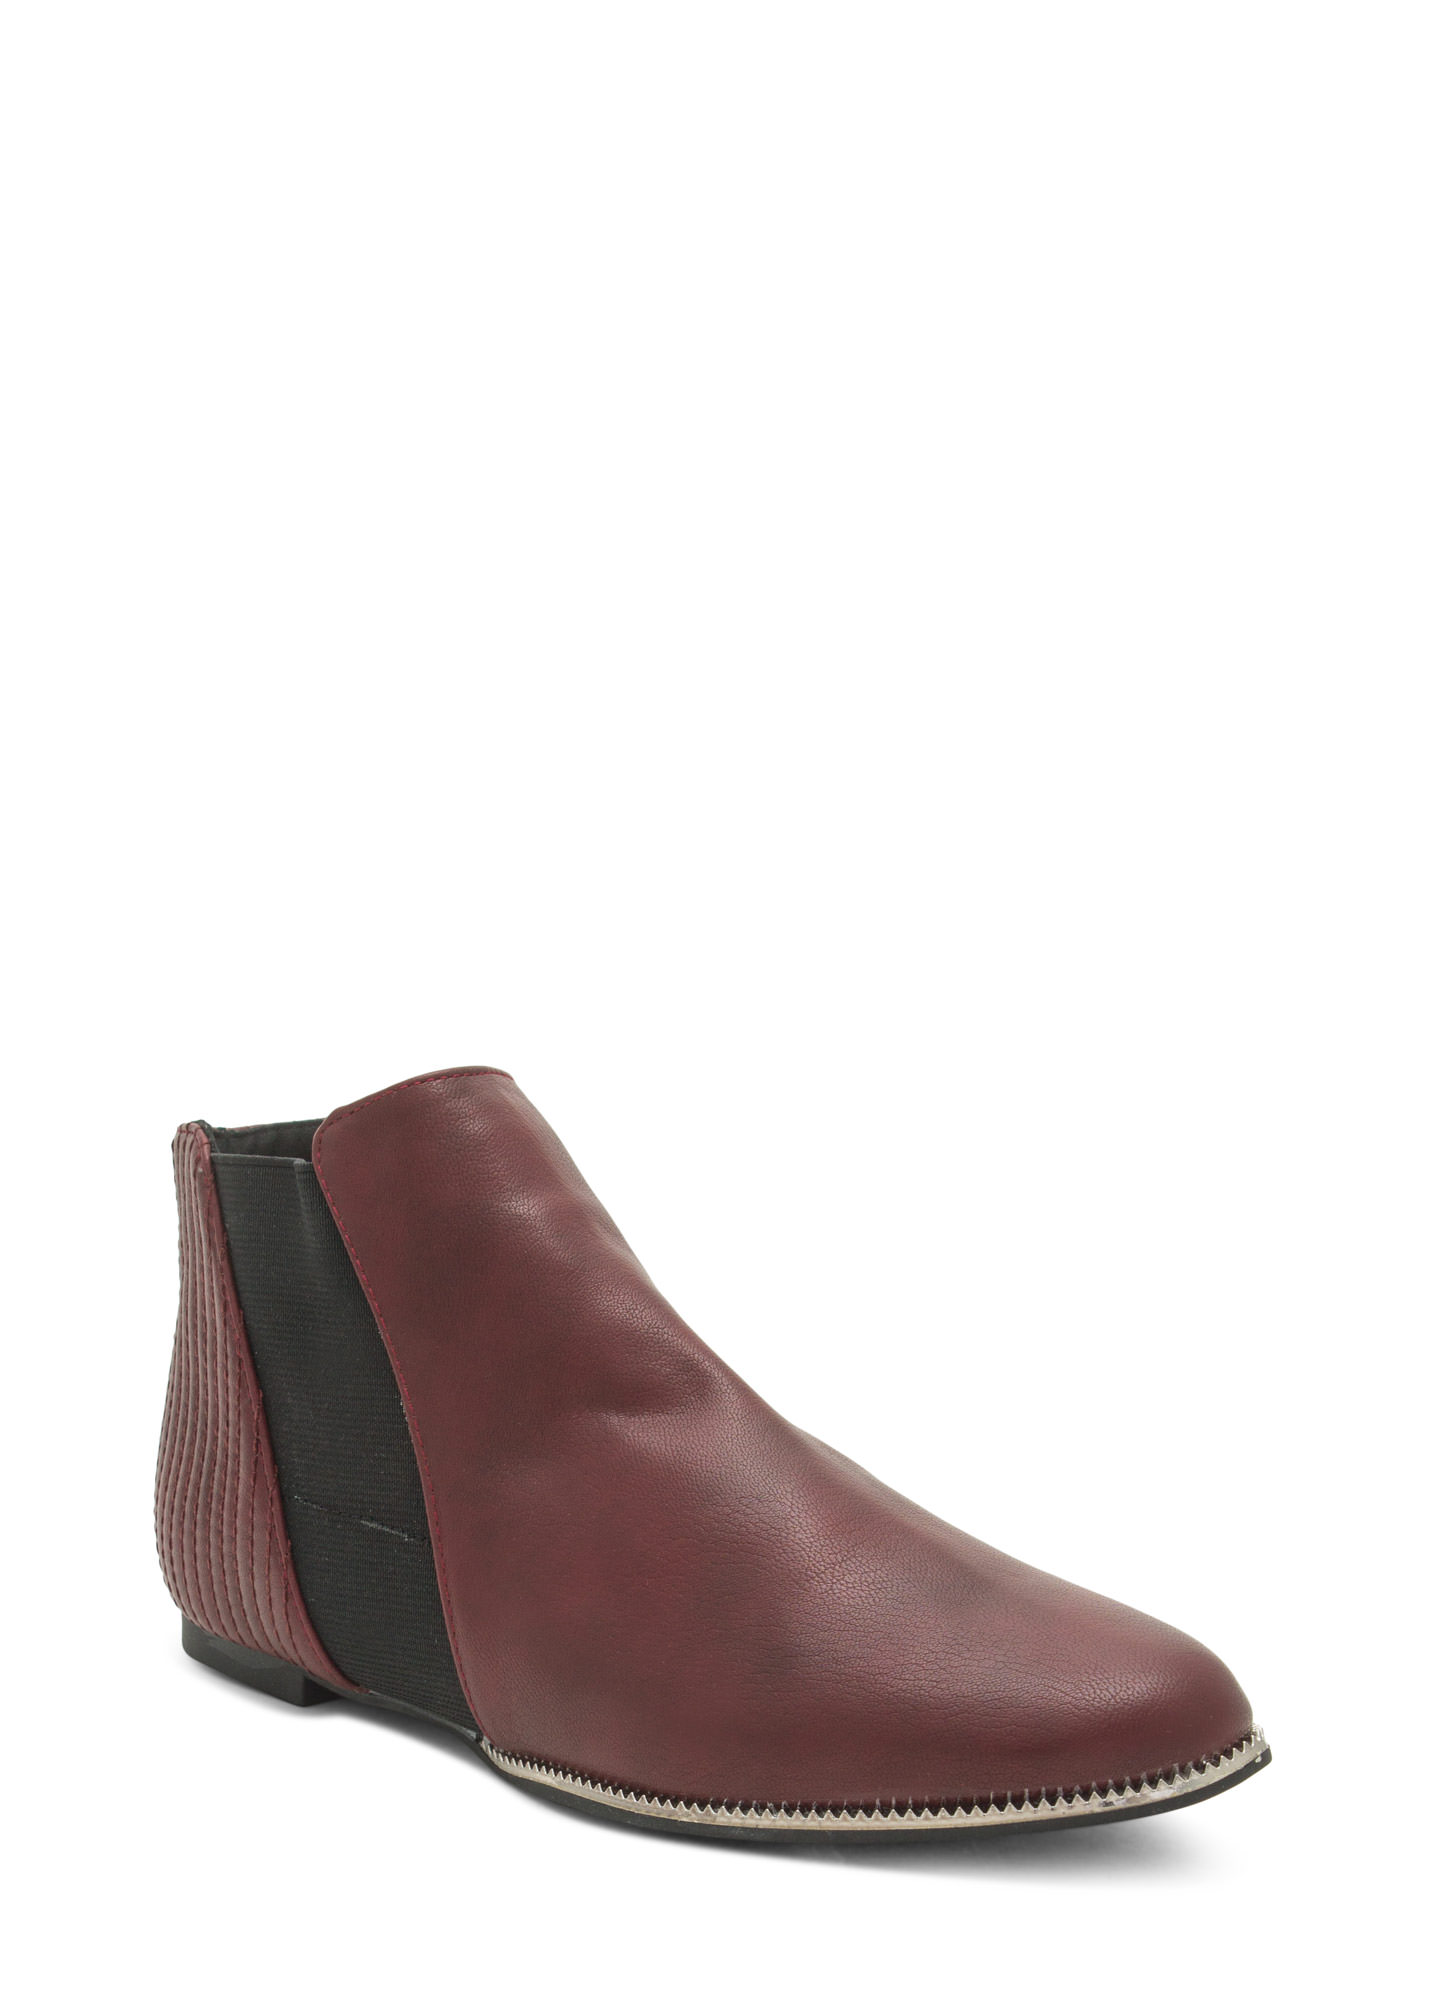 Feelin' Metallic Faux Leather Booties  BURGUNDY